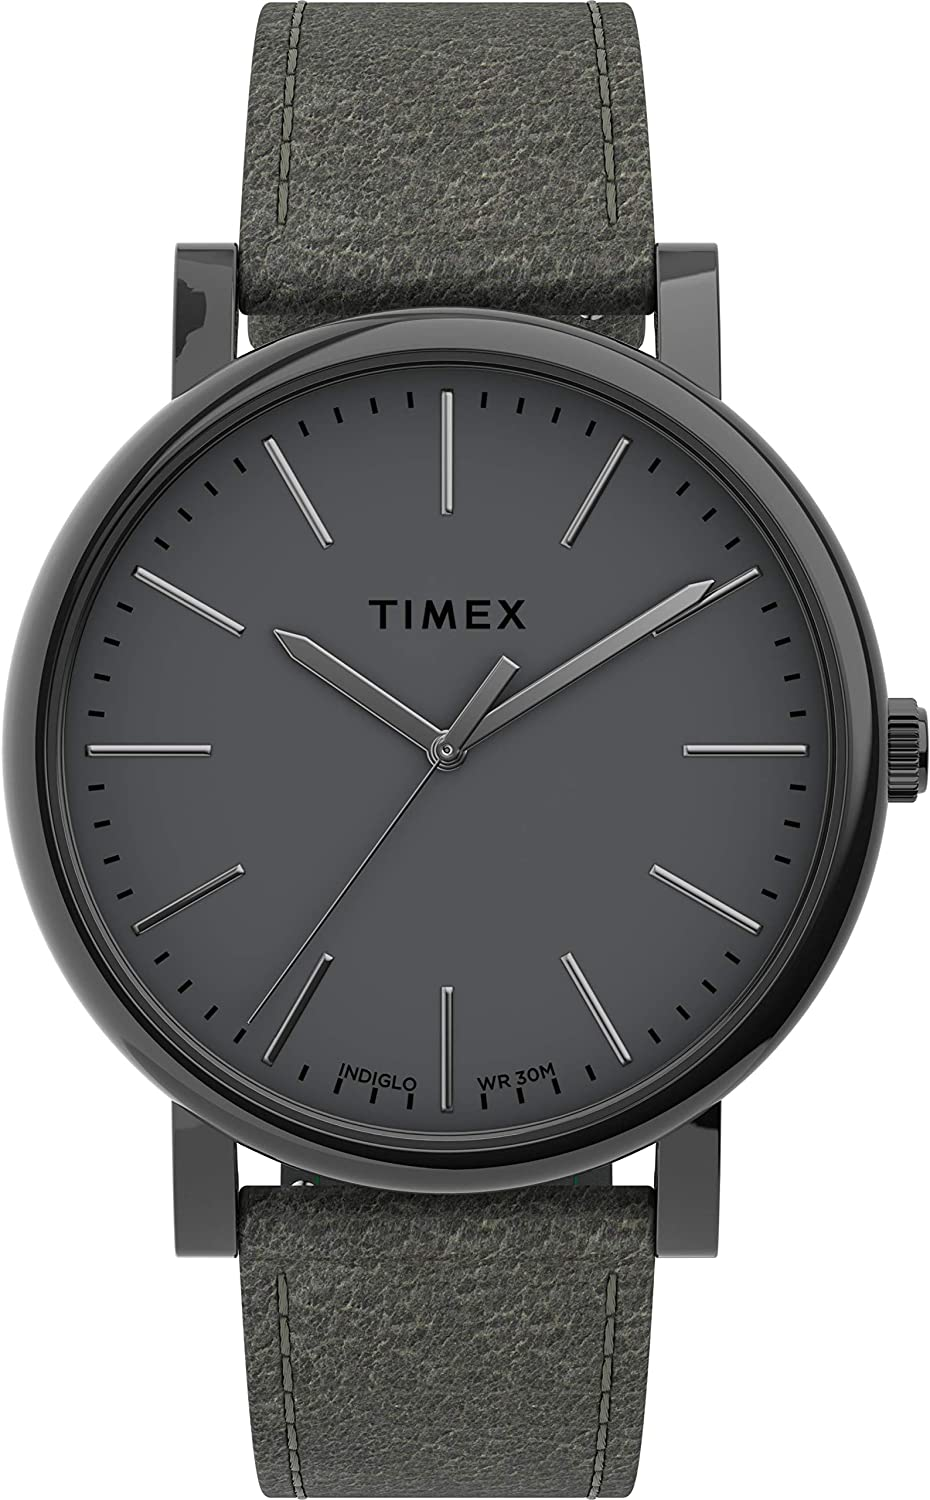 腕時計 タイメックス メンズ 【送料無料】Timex Men's Originals 42mm Stainless Steel Analog Quartz Leather Strap, Gray, 20 Casual Watch (Model: TW2U05900)腕時計 タイメックス メンズ